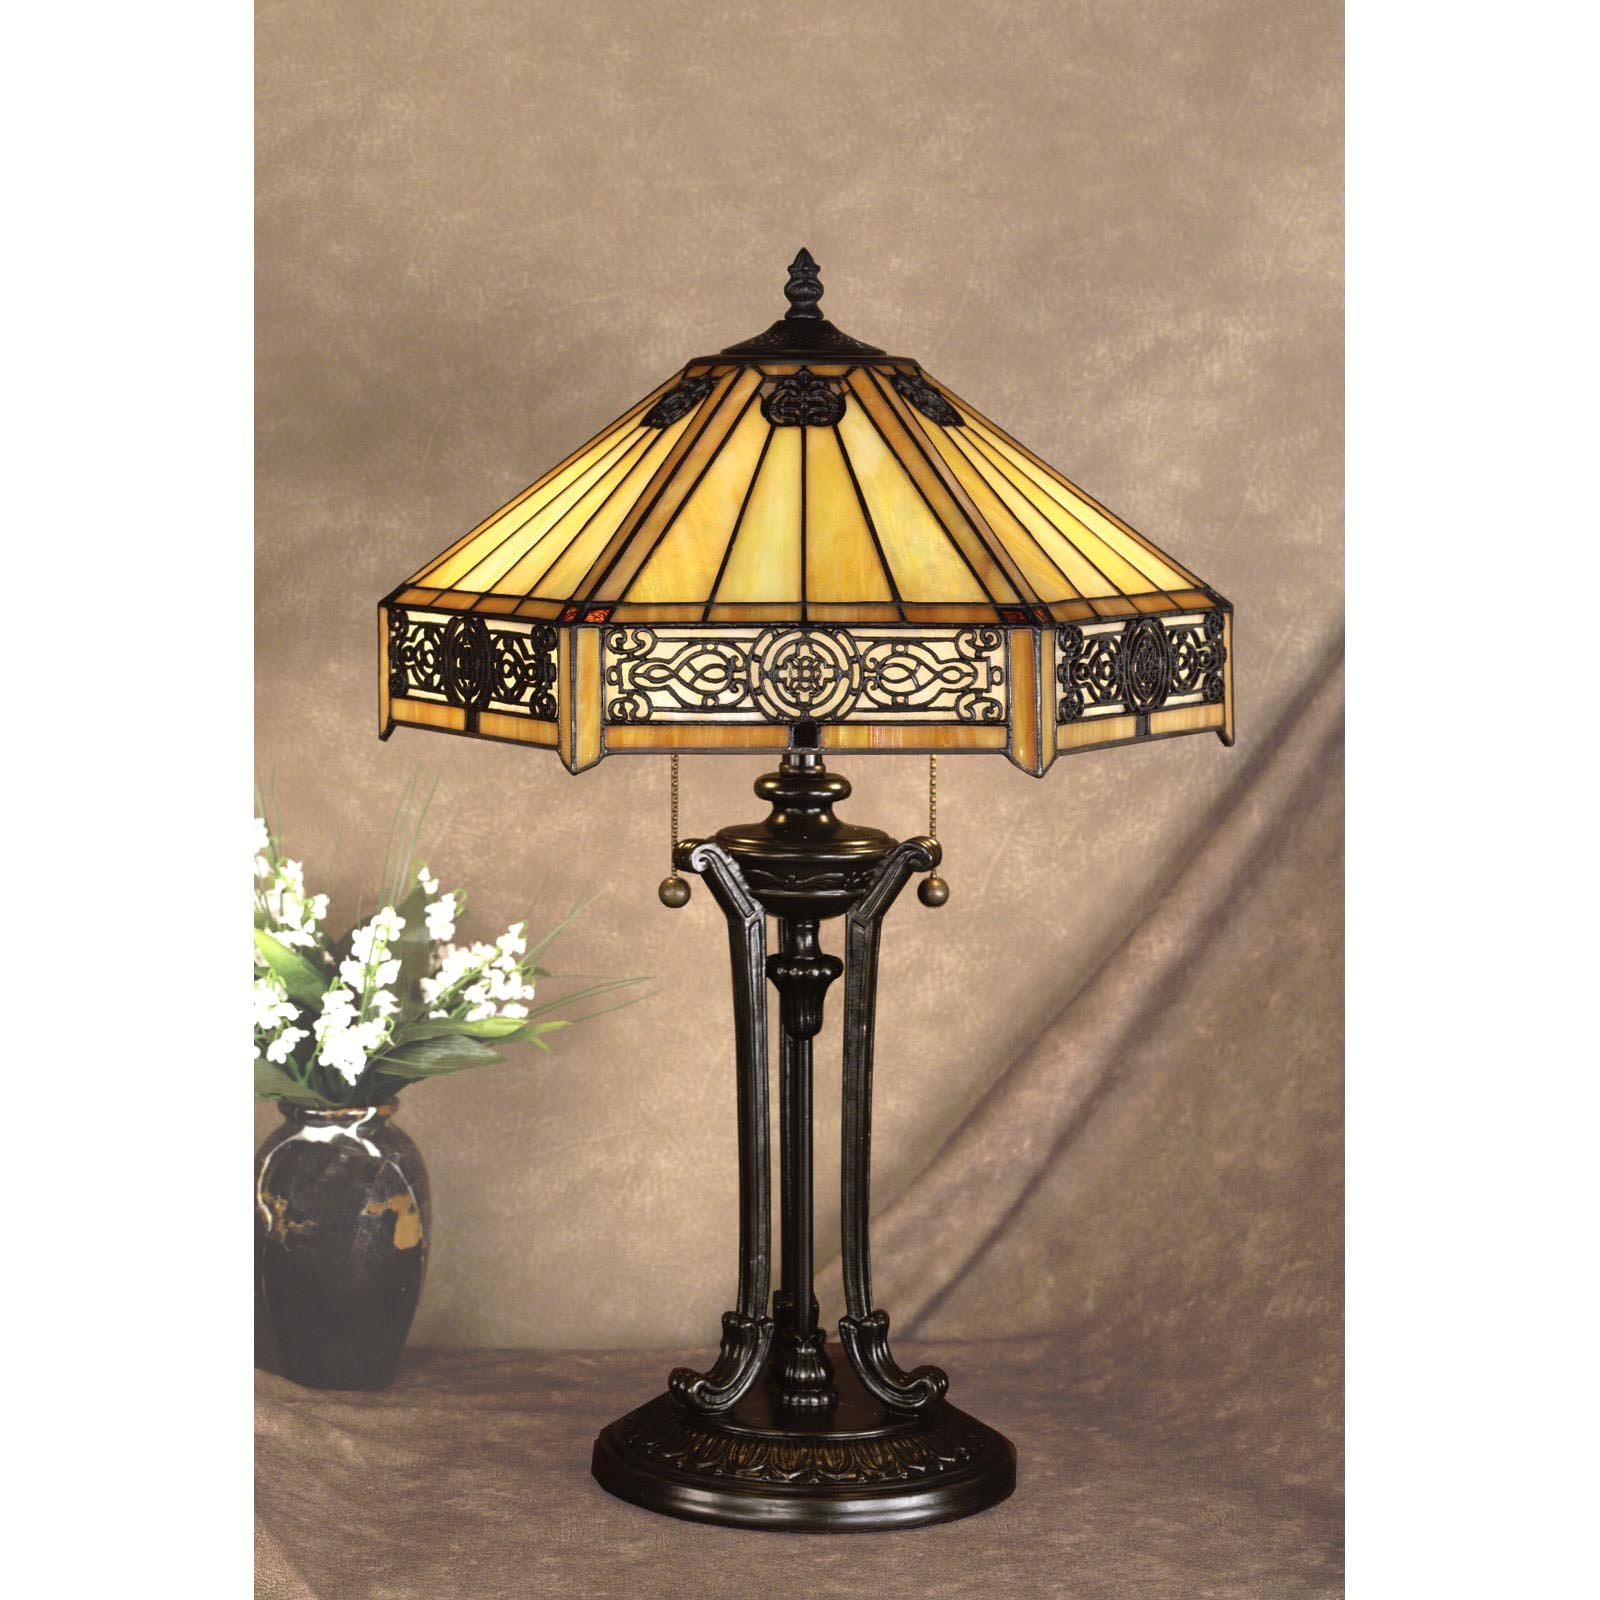 Tiffany lamp quoizel On WinLights.com | Deluxe Interior Lighting ...